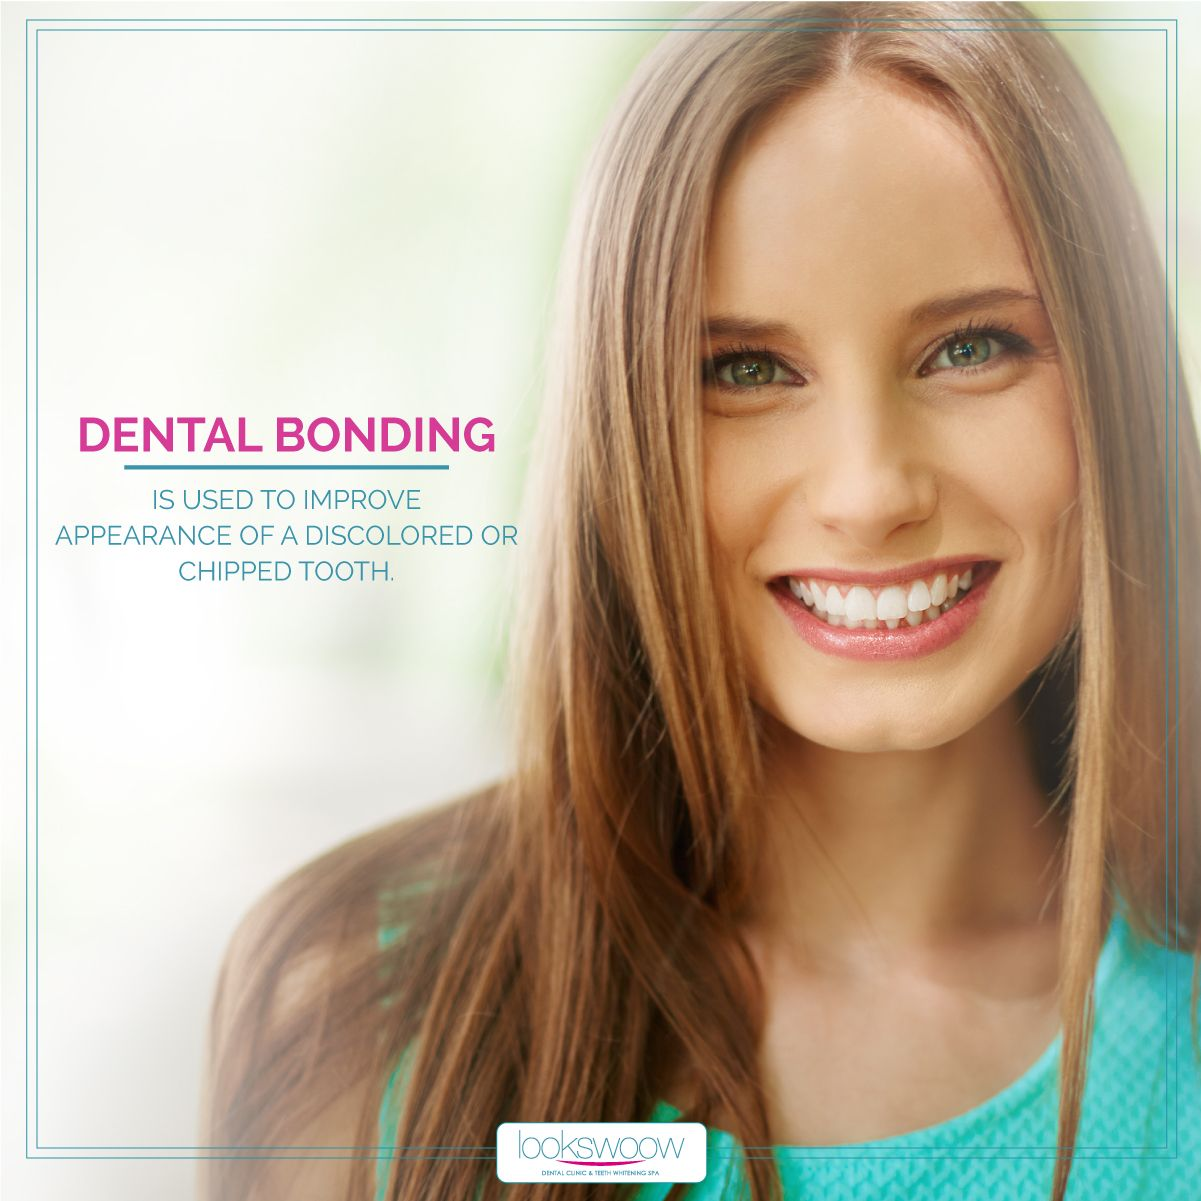 Have a chipped broken or stained tooth dental bonding